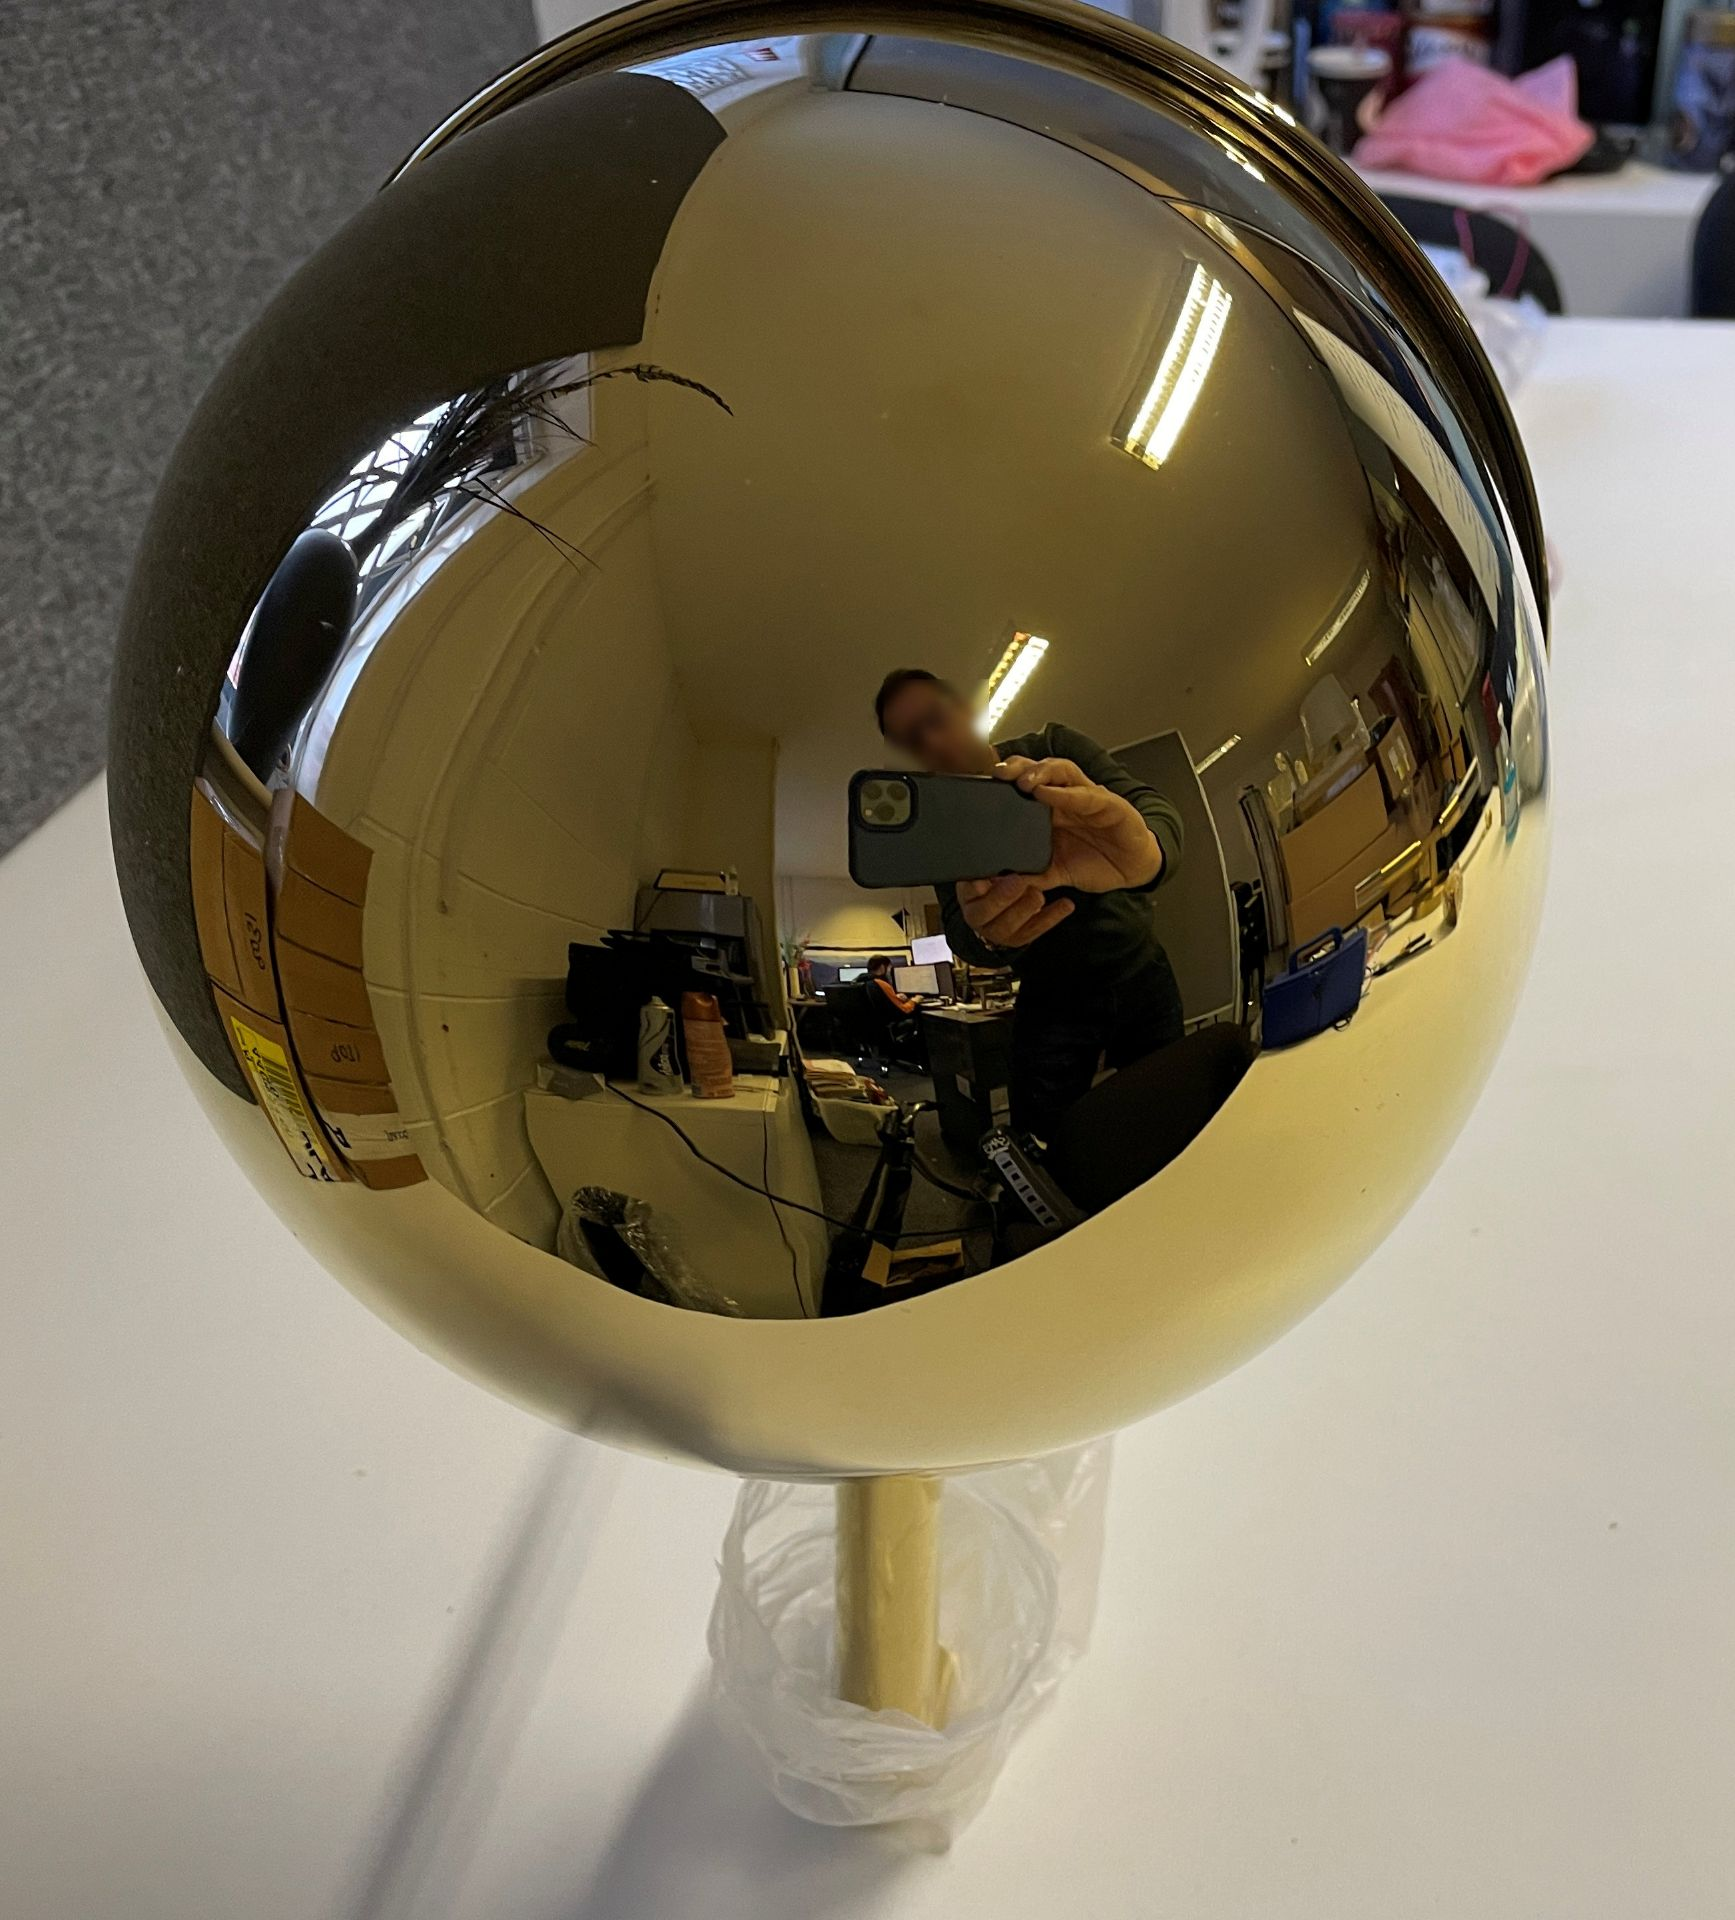 1 x Tall 119cm Polished Brass Wall Light with large adjustable round head (Diameter 21cm) with Wal - Image 10 of 18